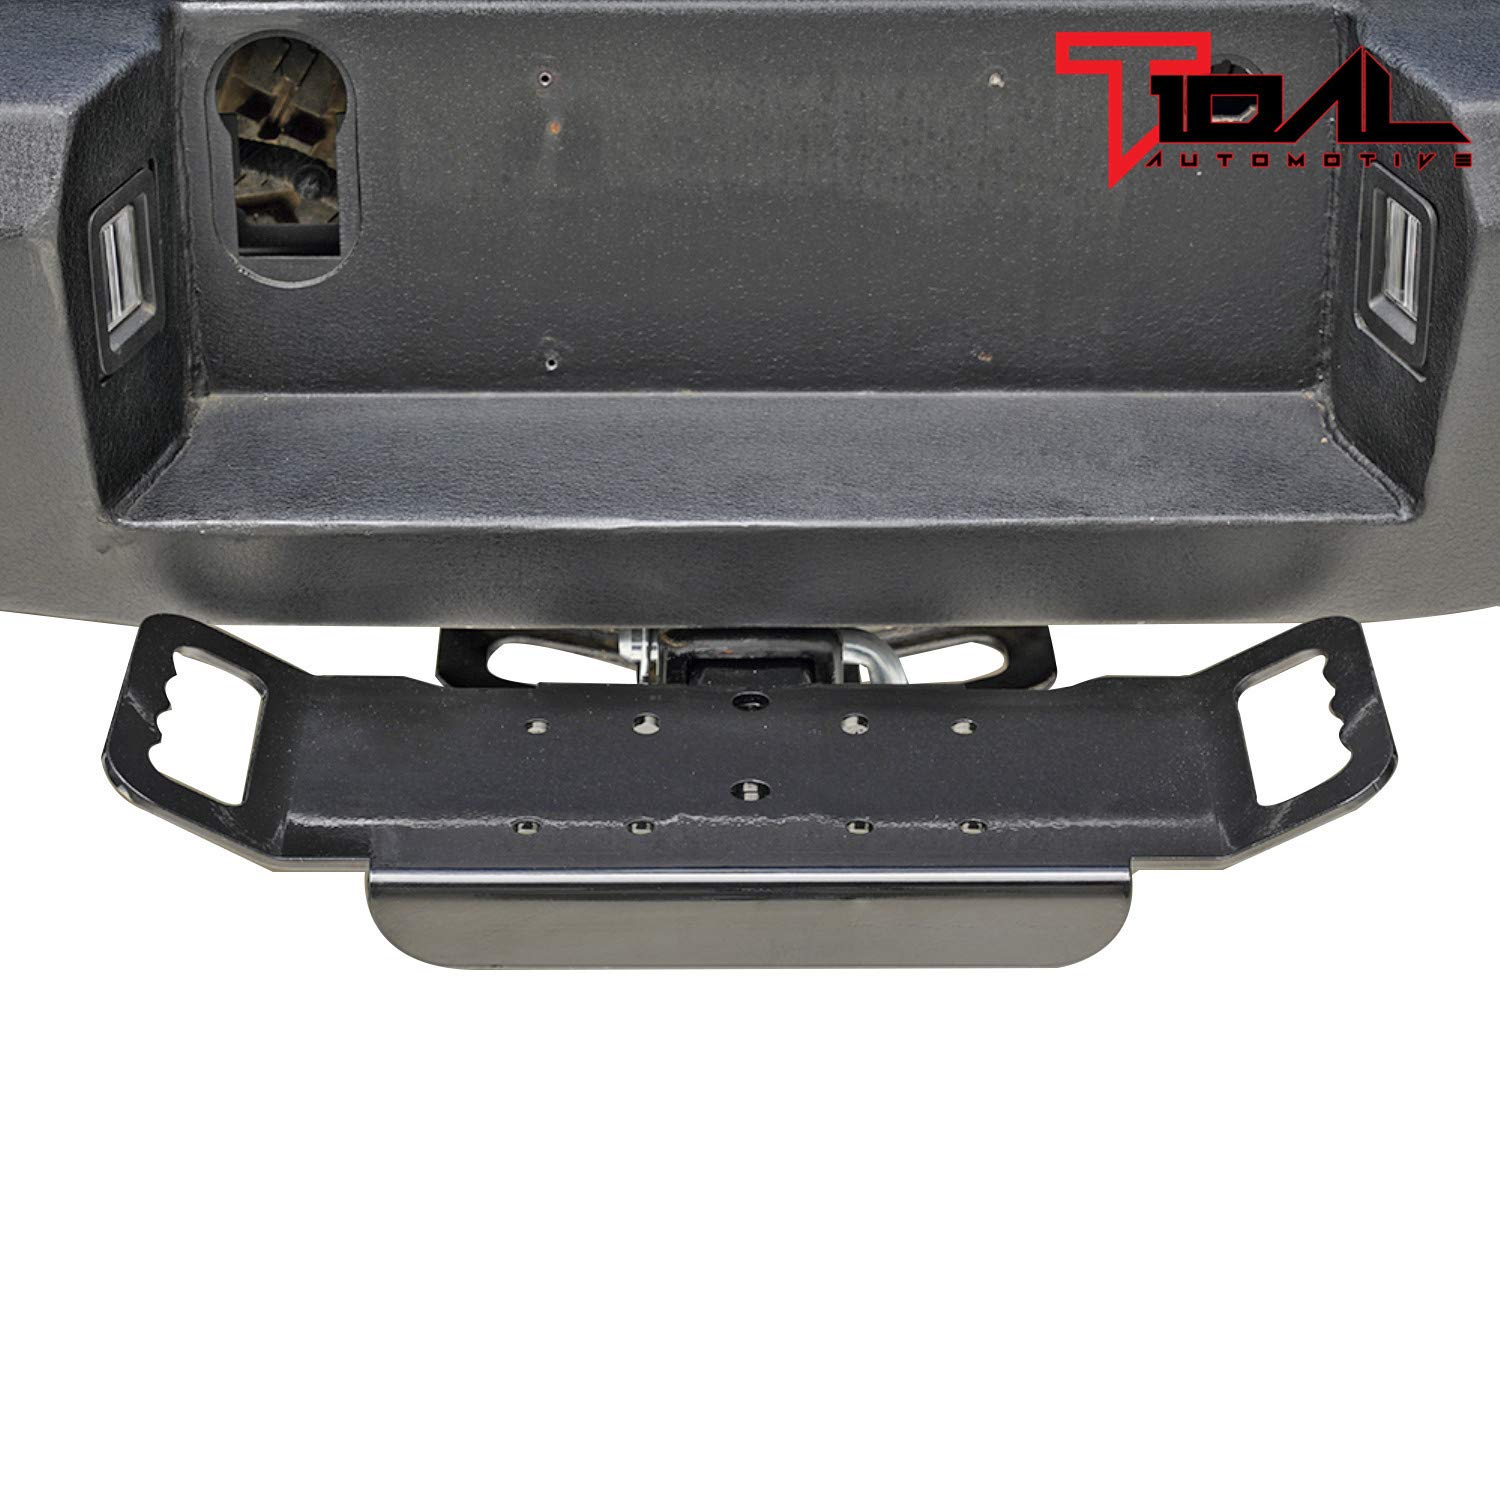 Tidal 2'' Universal Receiver Carrier Mount with Handle by Tidal Automotive